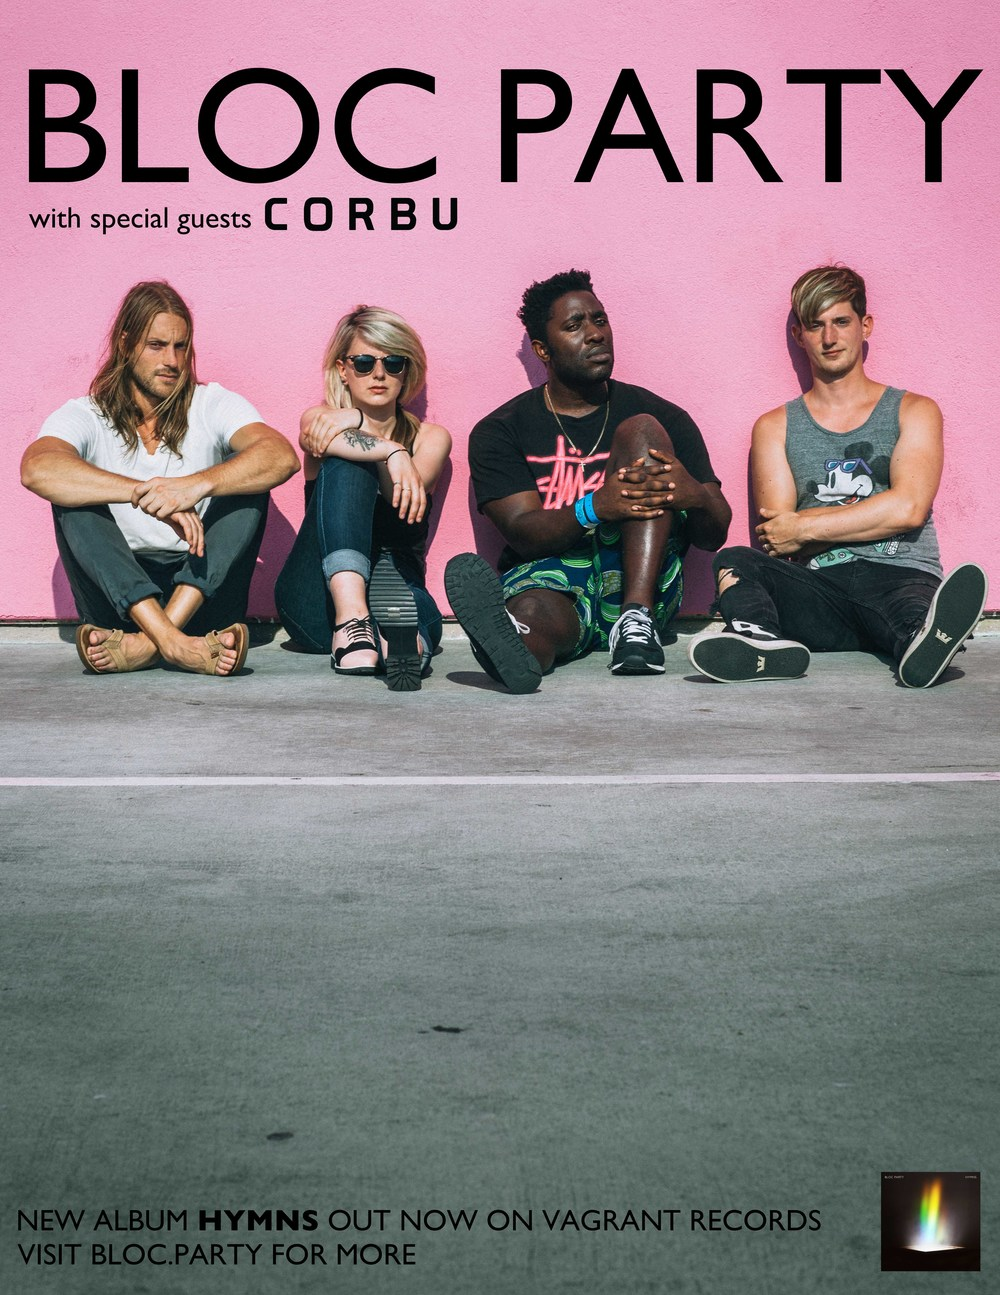 Bloc Party Corbu_edited-1.jpg